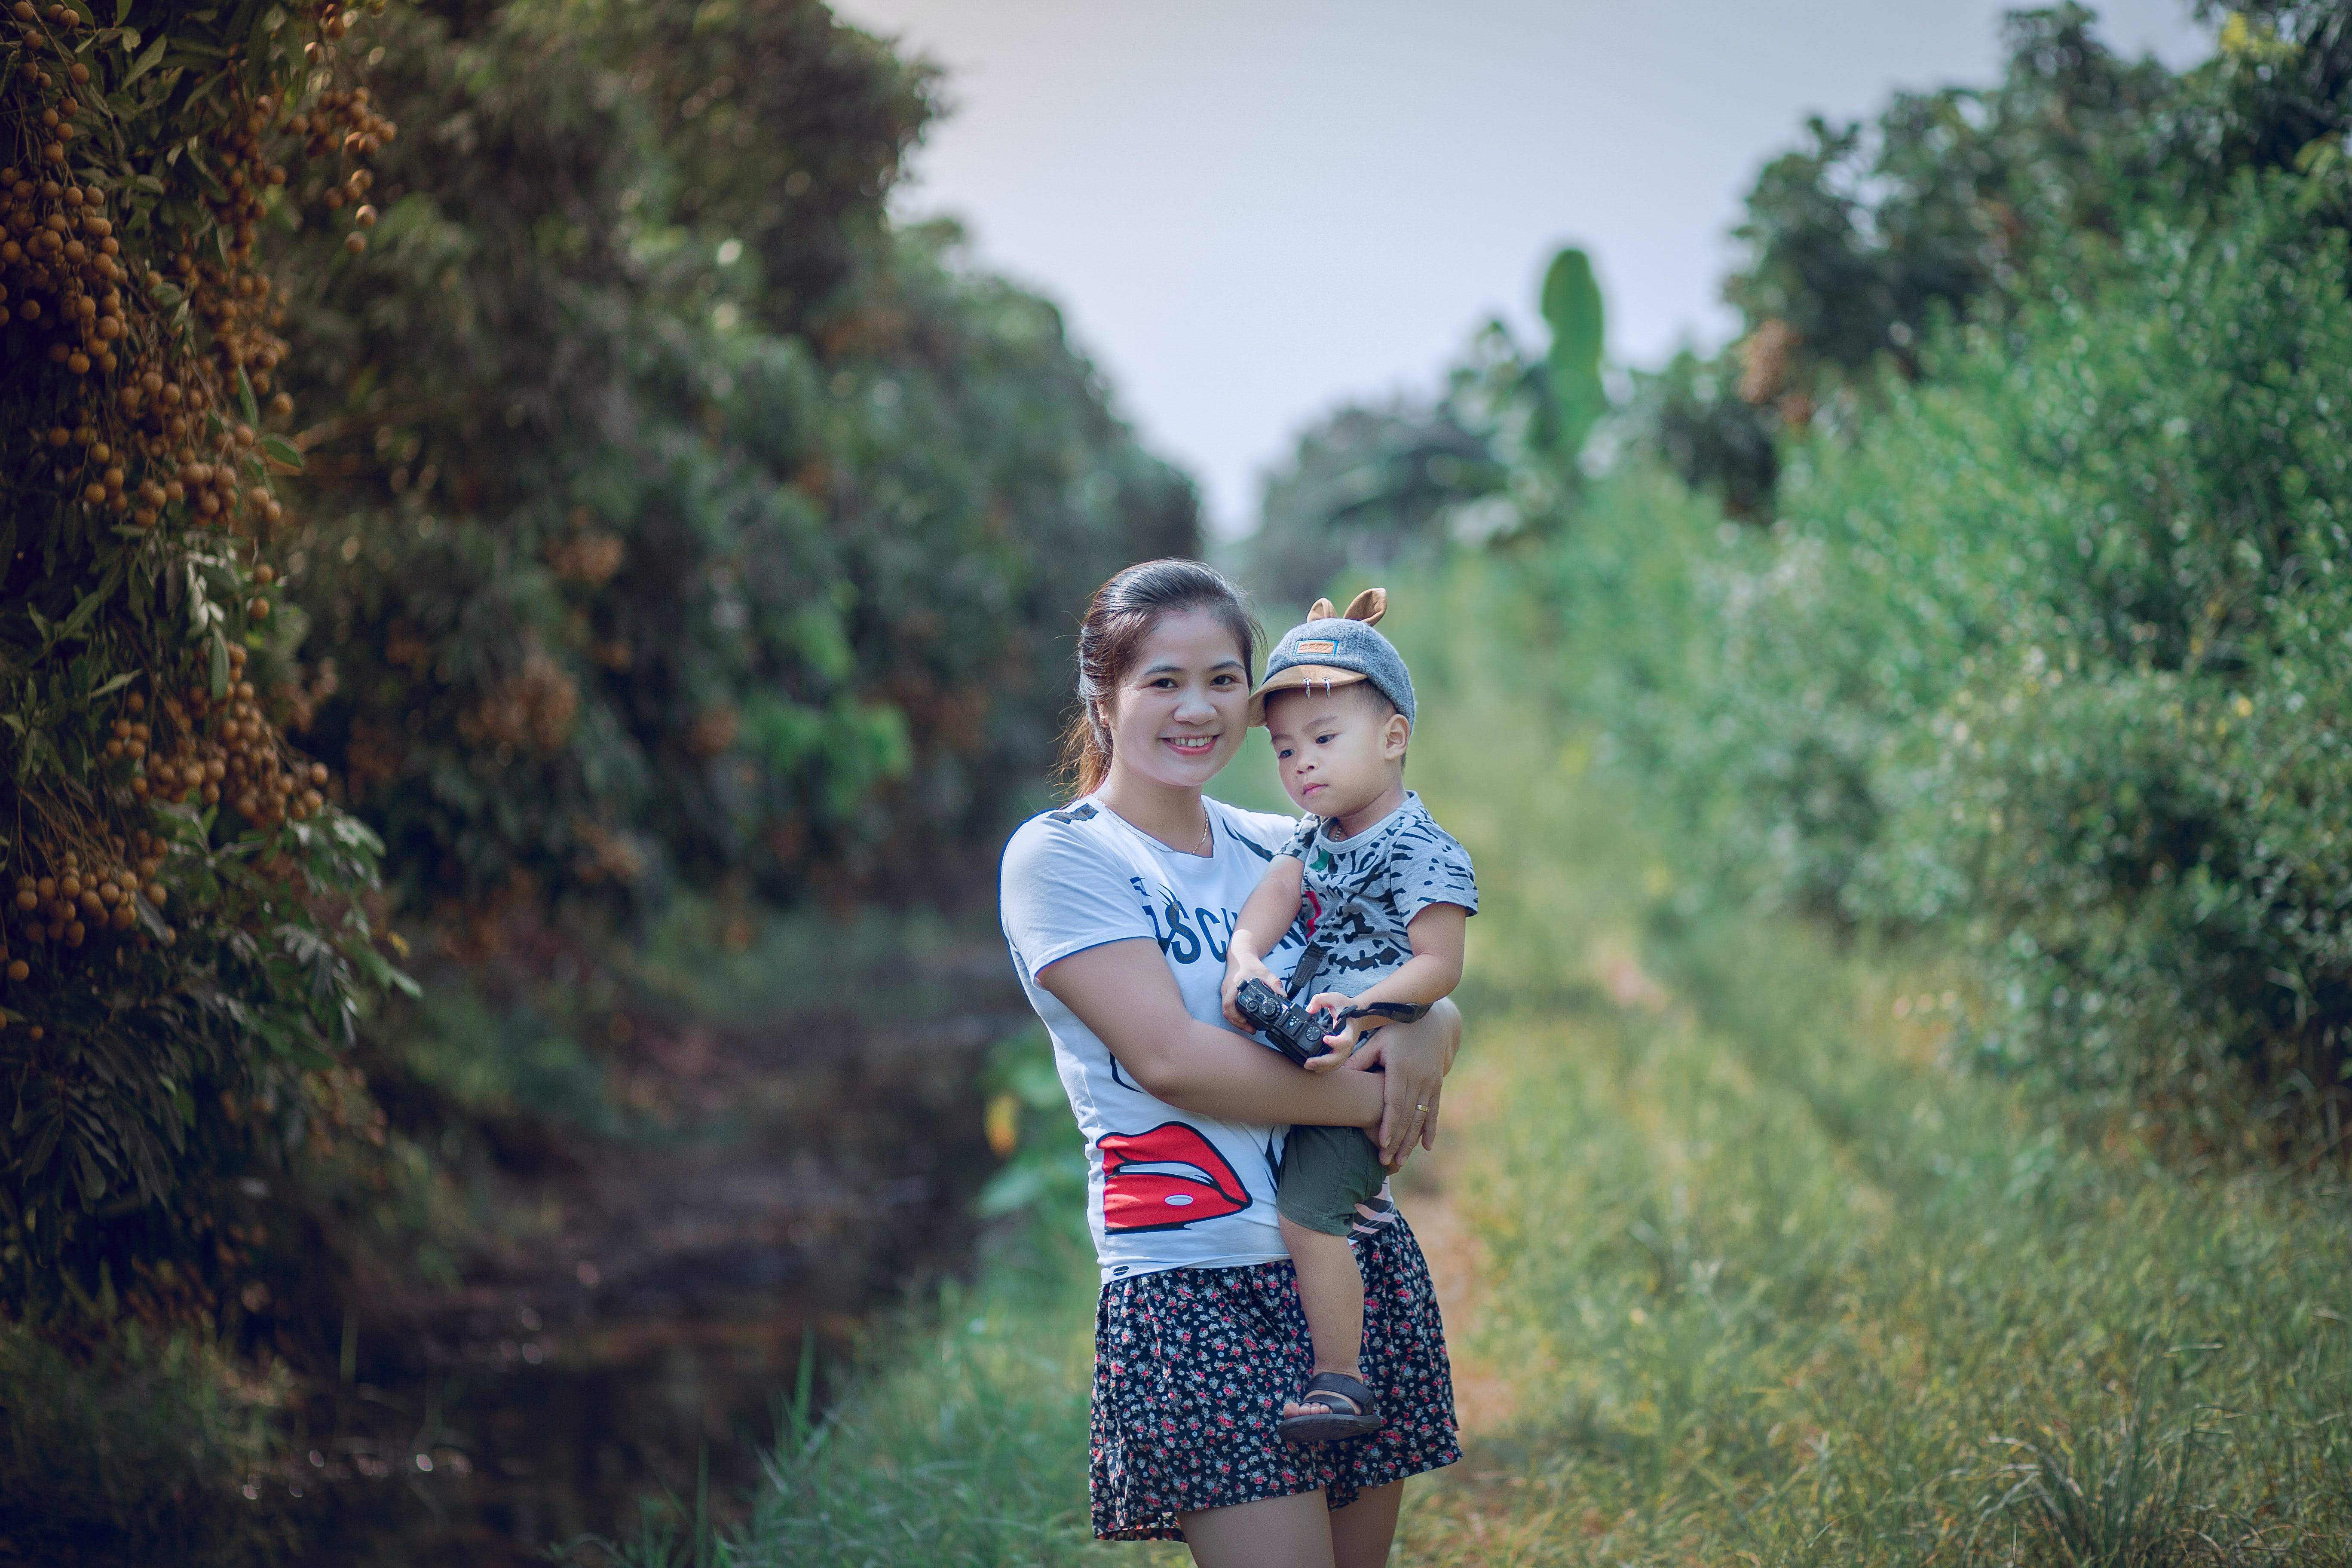 Woman Carrying Her Son Standing Between Trees